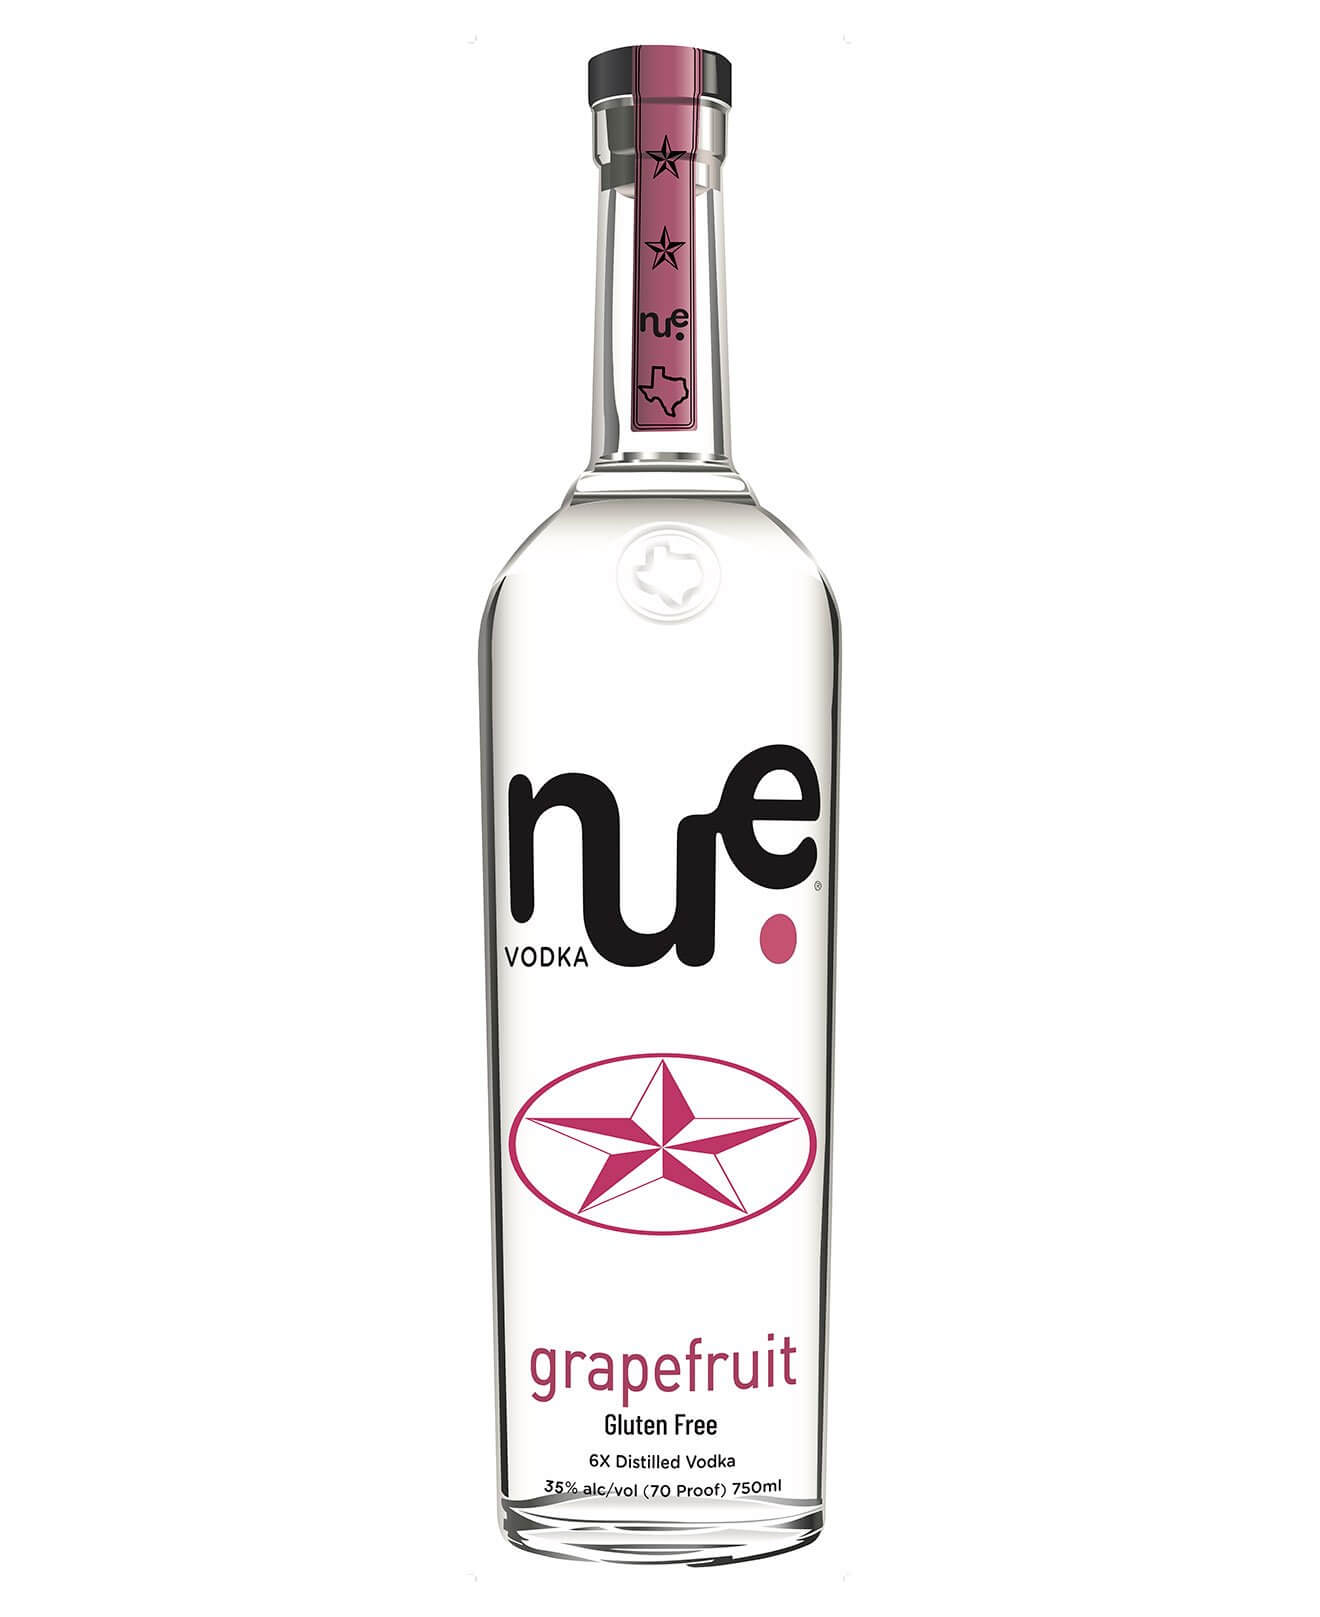 Nue Grapefruit Vodka, bottle on white